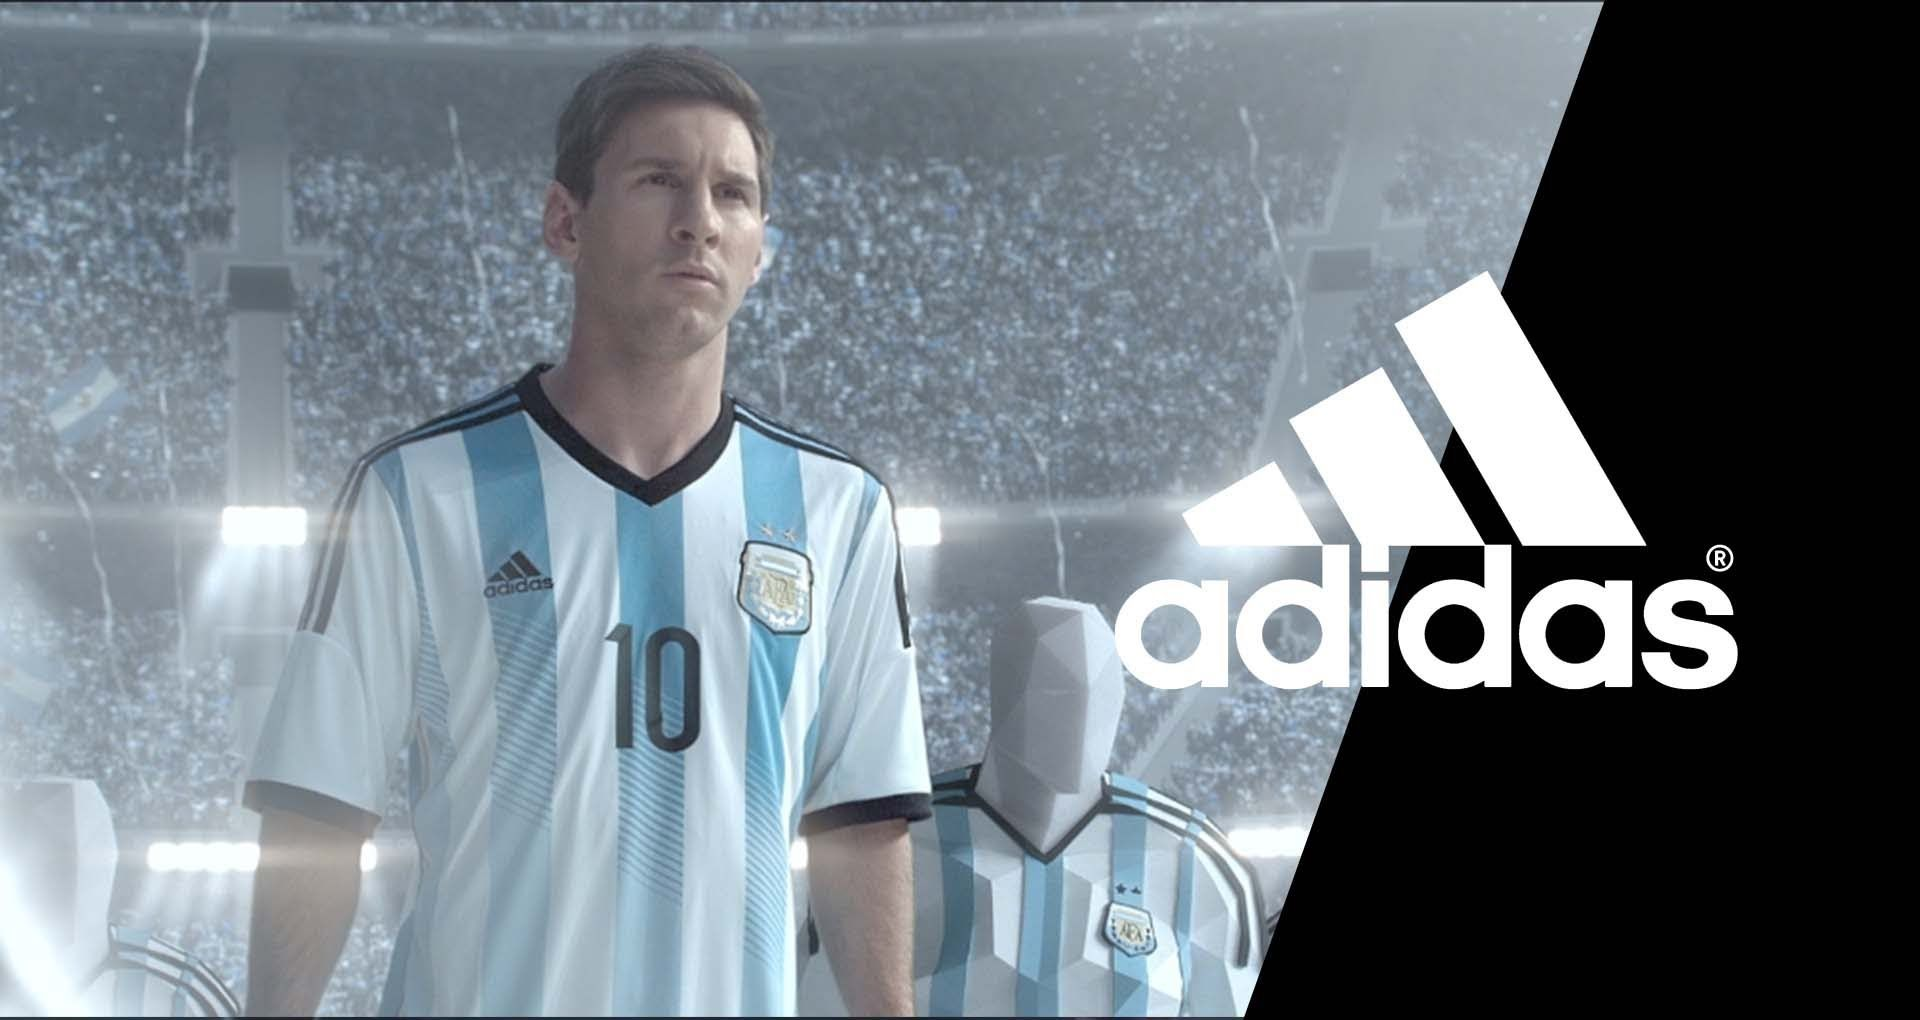 Adidas The Dream All In Or Nothing World Cup Commercial Feat Music By Kanye West Swarve Men Leo Messi Messi Adidas Football